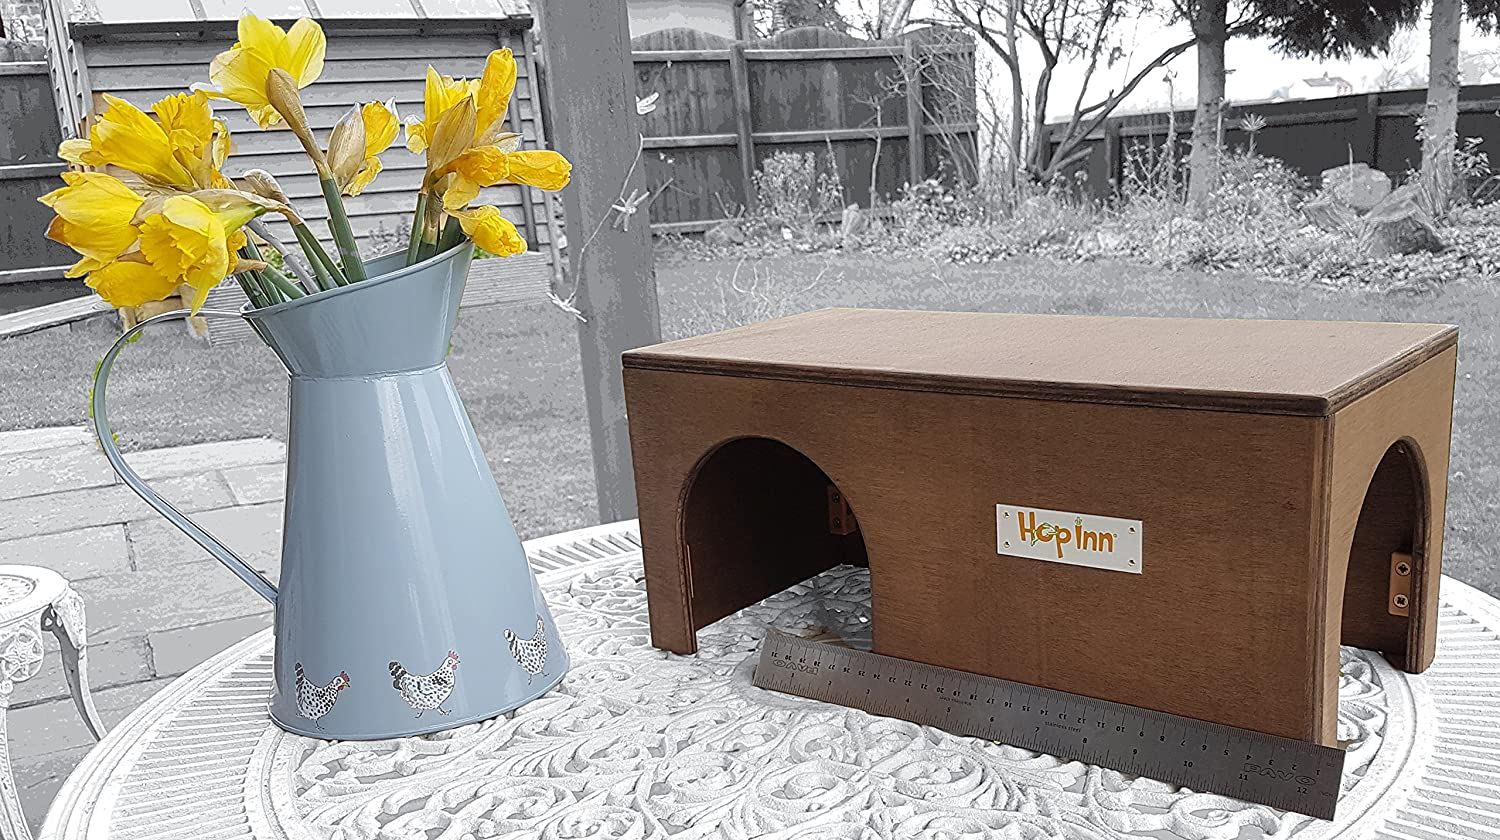 Hop Inn' Guinea Pig House Shelter Tunnel (Green) - 40 cm L x 20 cm W x 18.5 cm H Indoor or Outdoor 0891